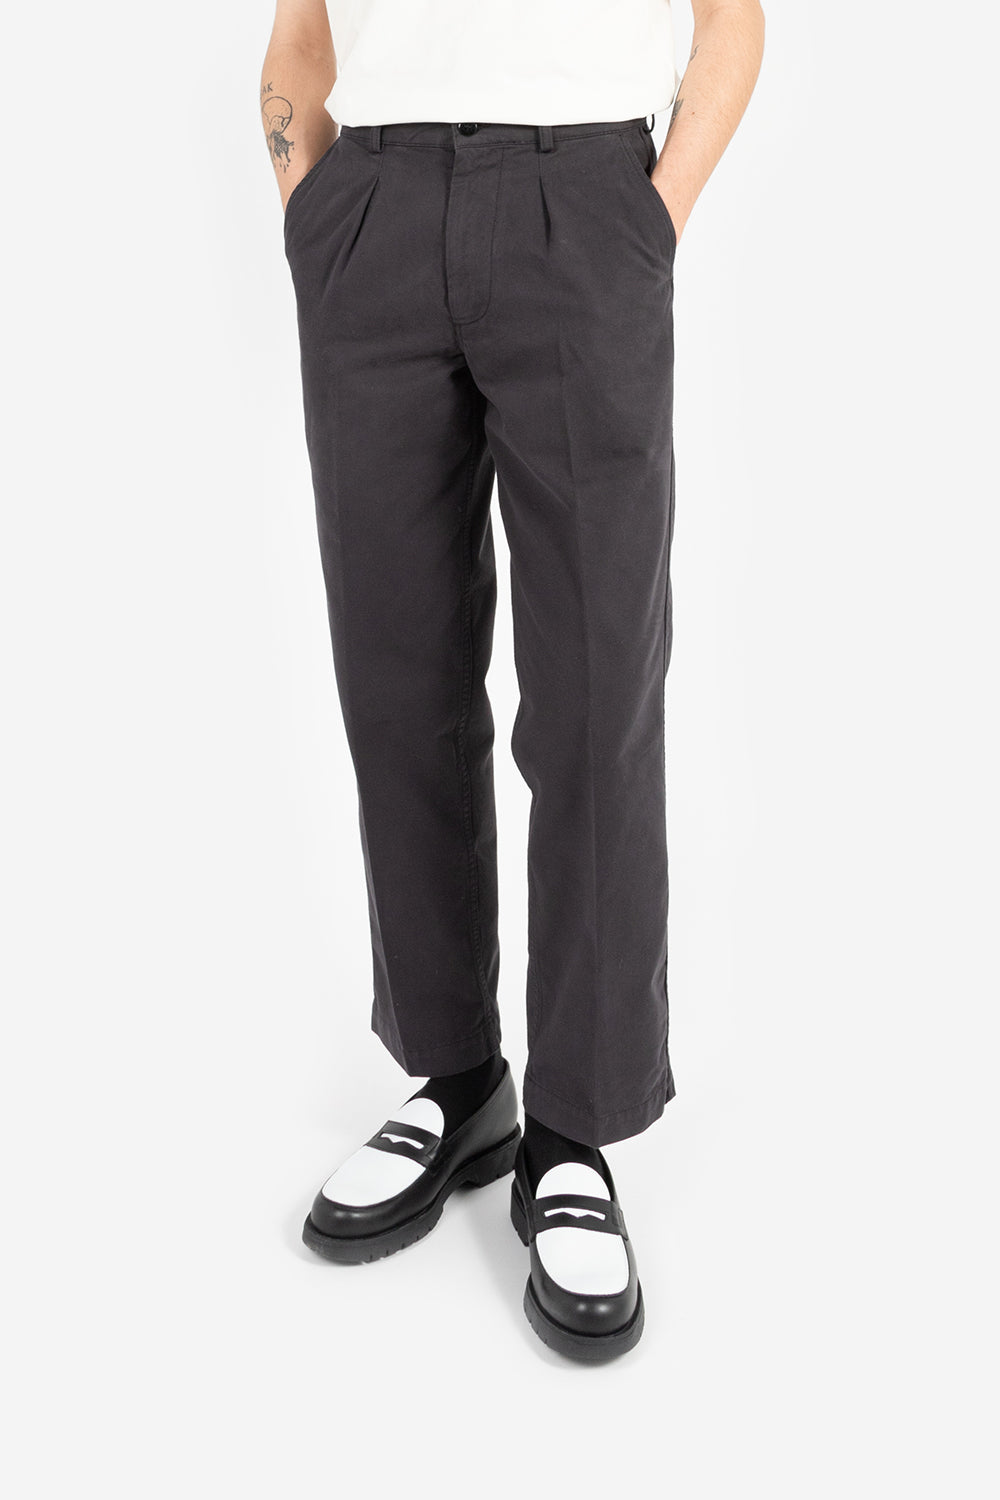 Knickerbocker Single Pleat Twill Trouser